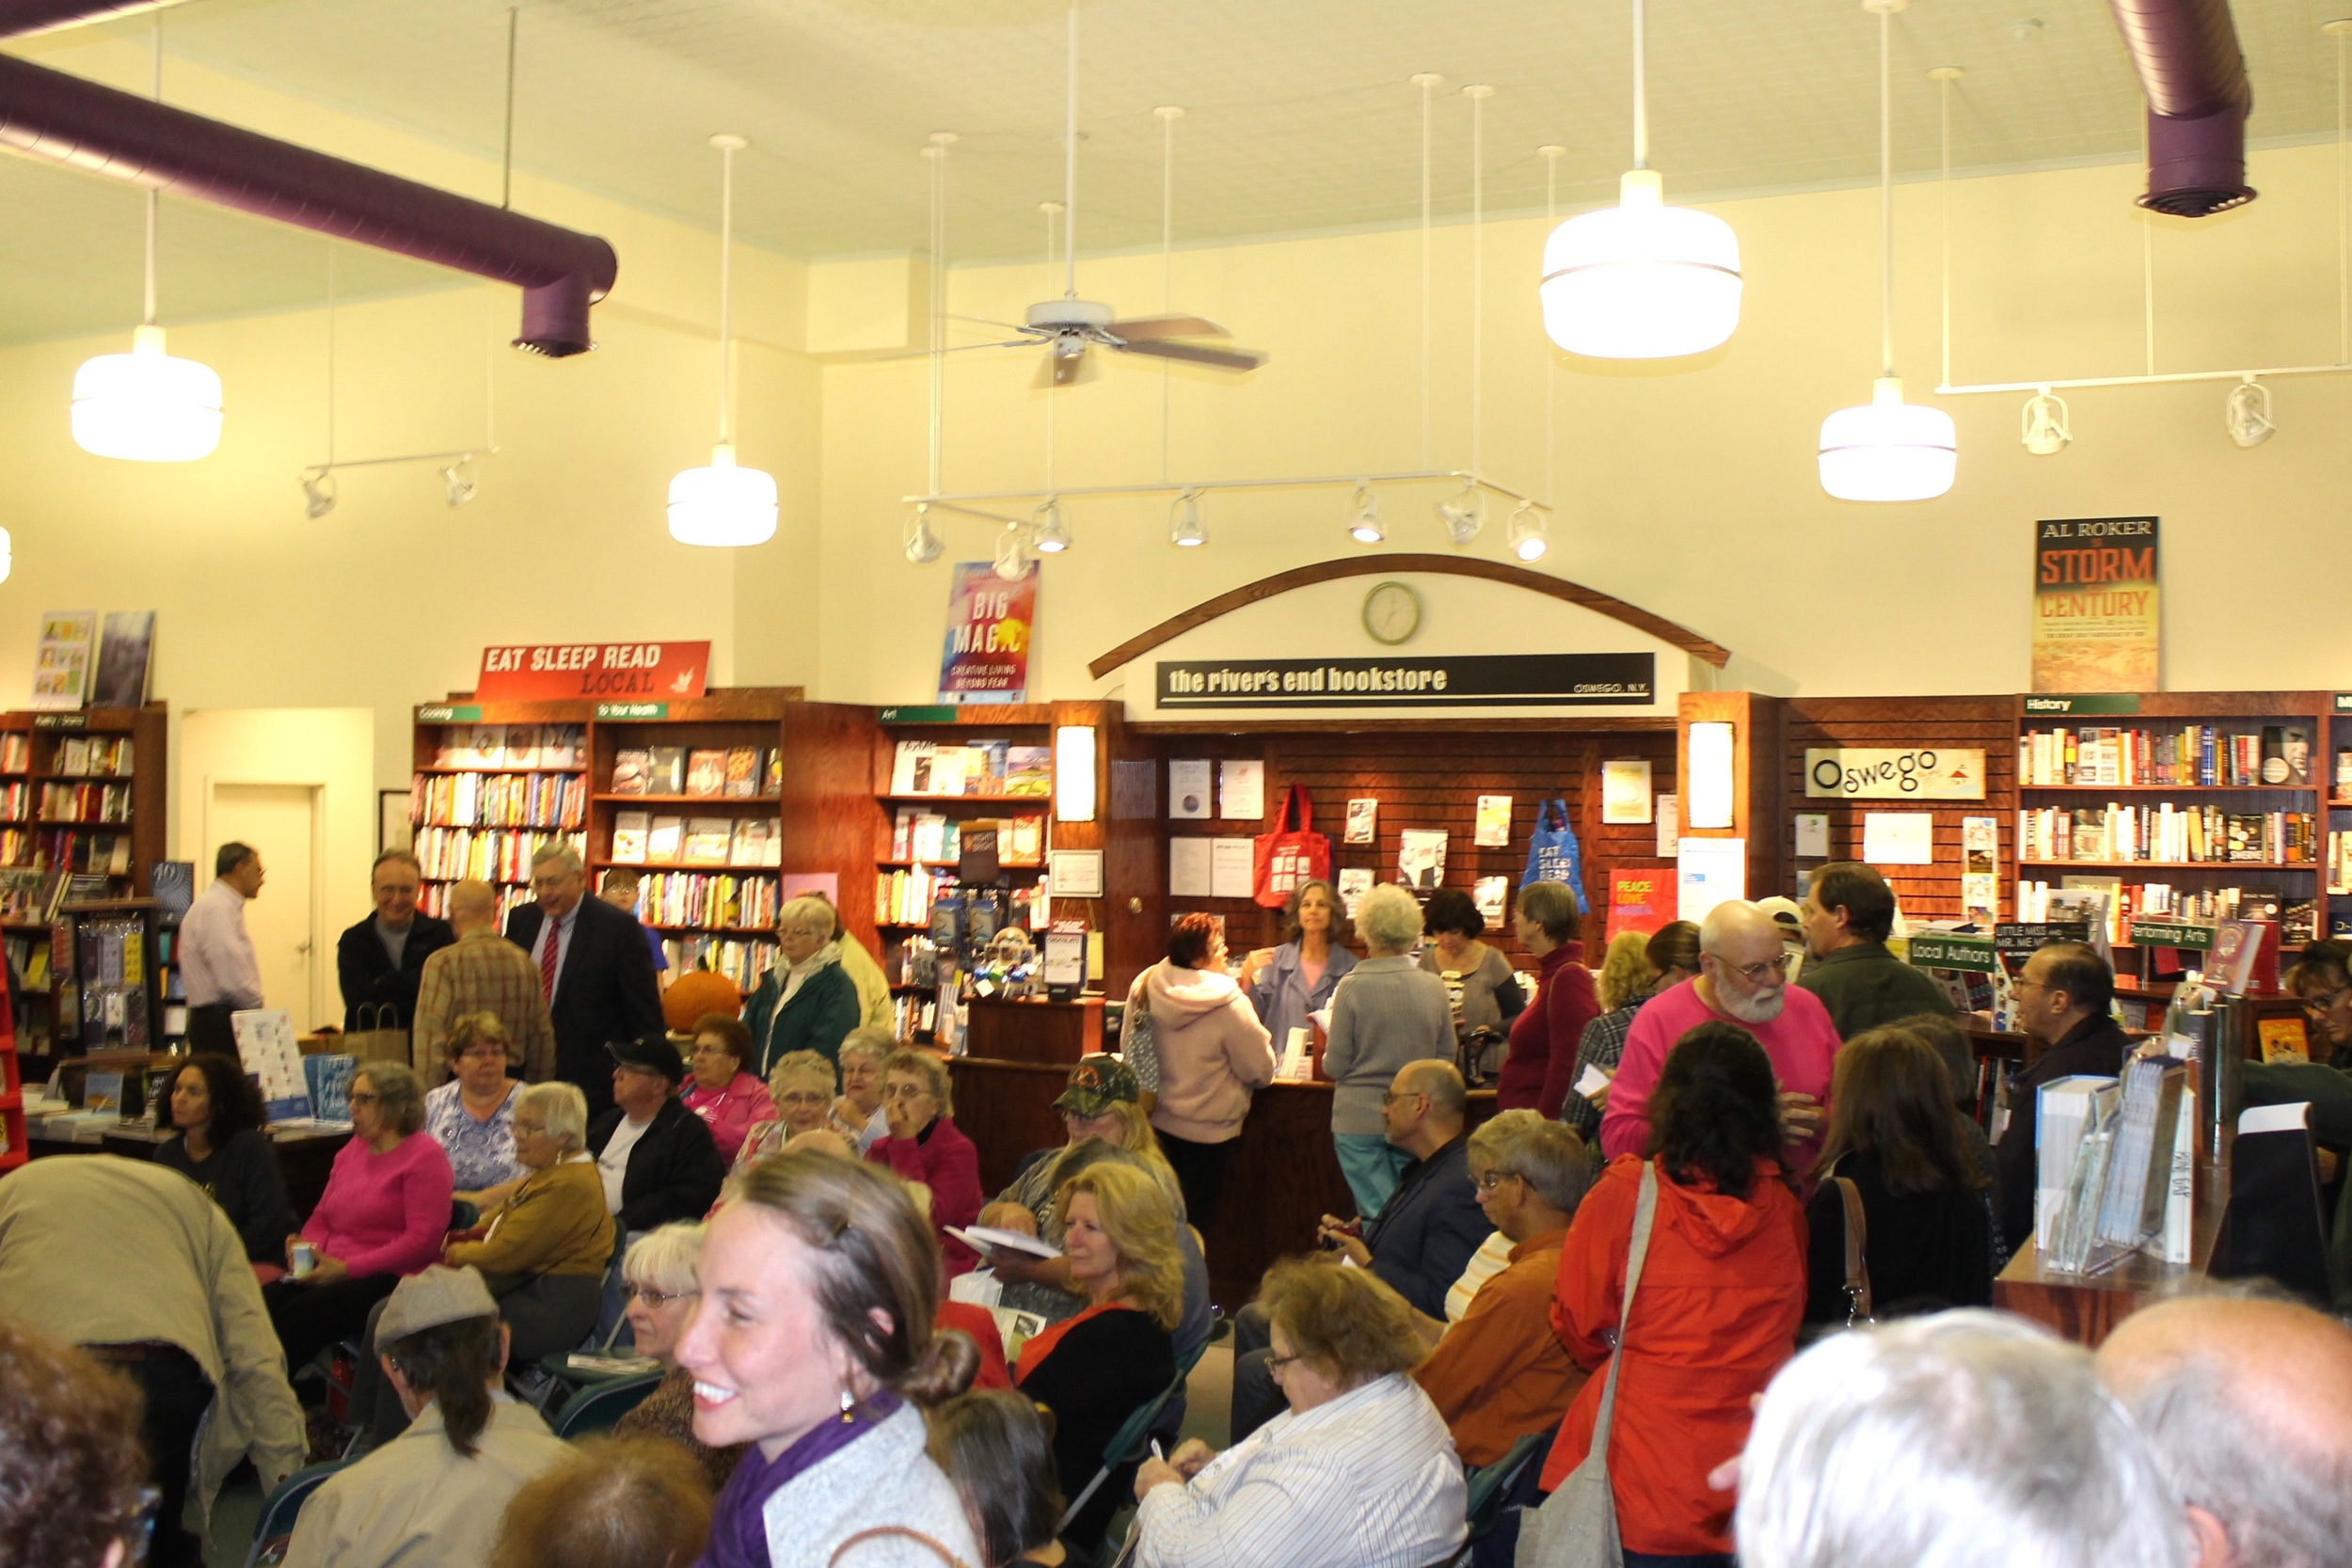 river's end bookstore on October 15, 2015, for the launch of my Blizzard of '66 and Bob Sykes books.